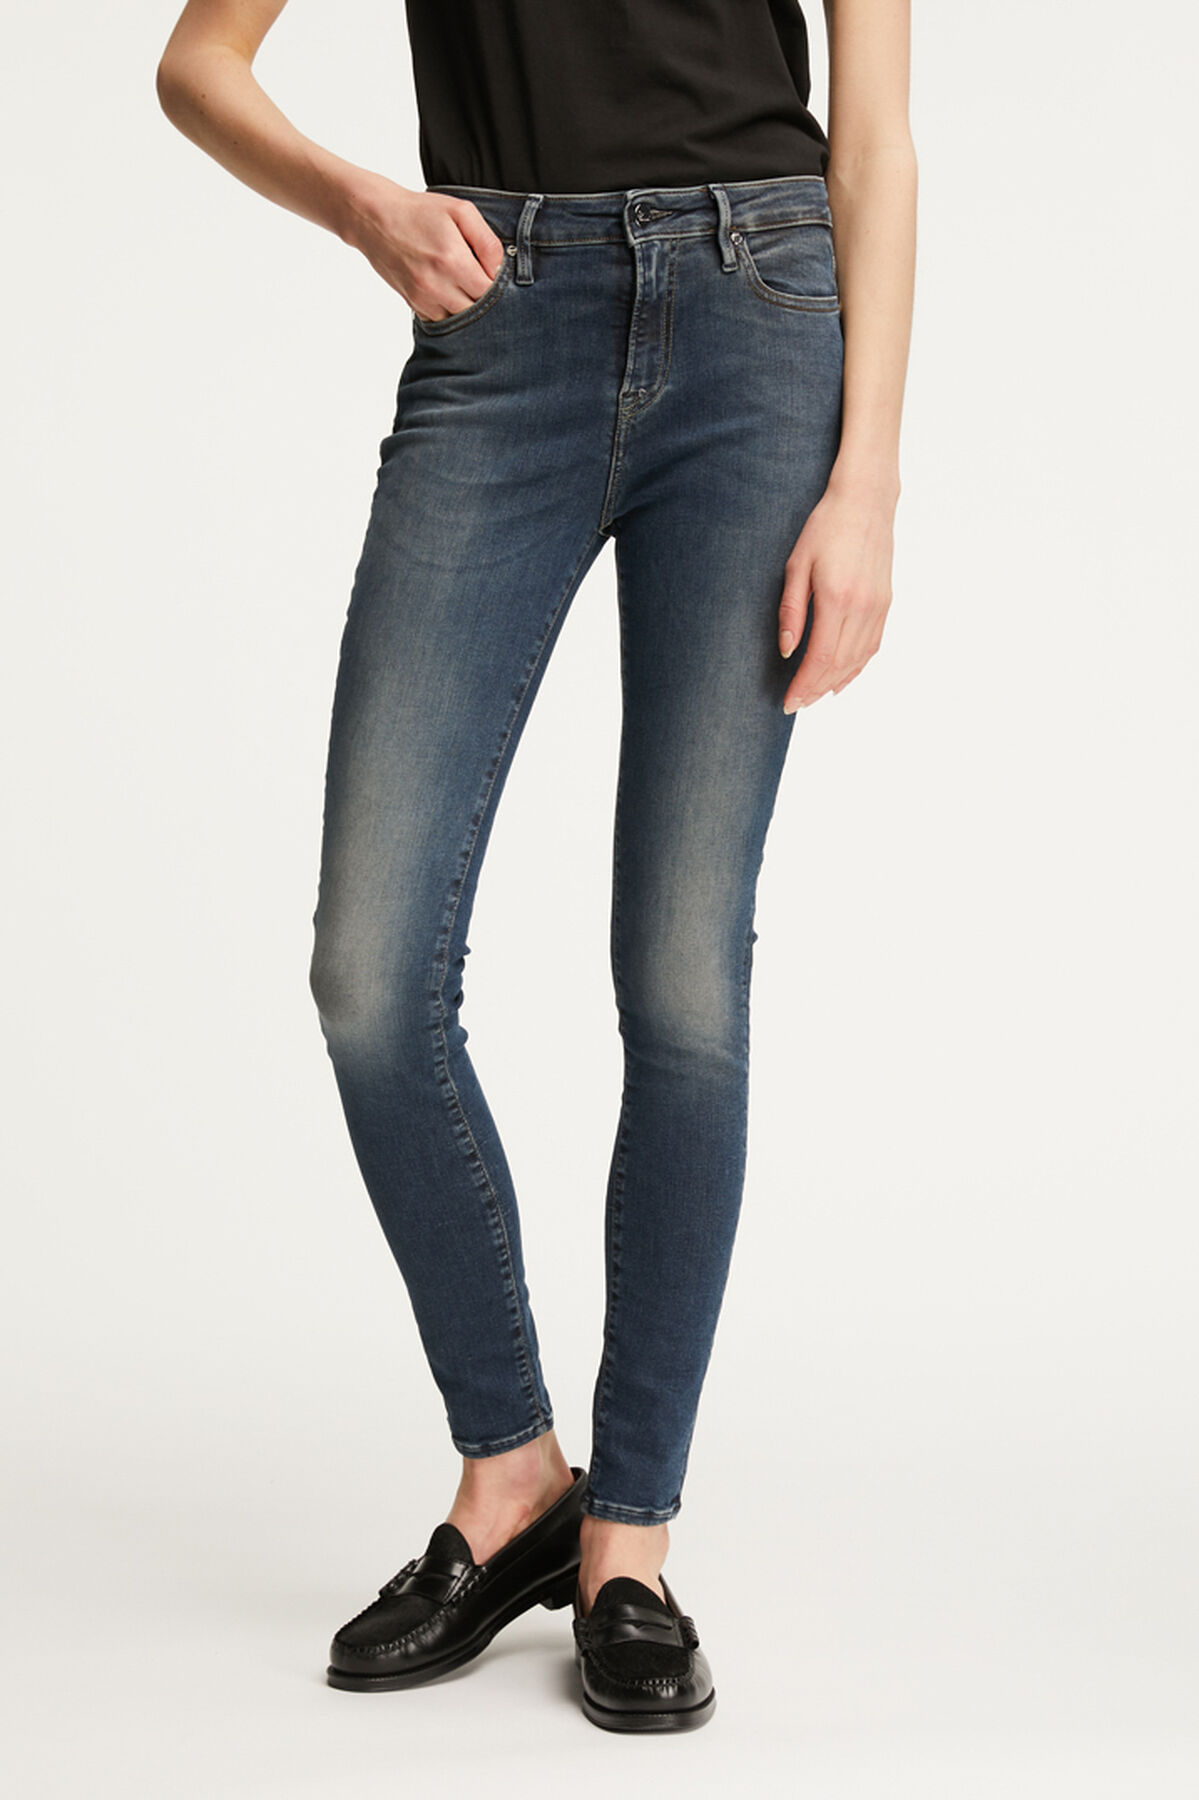 NEEDLE Classic Indigo Denim - High-Rise, Skinny Fit